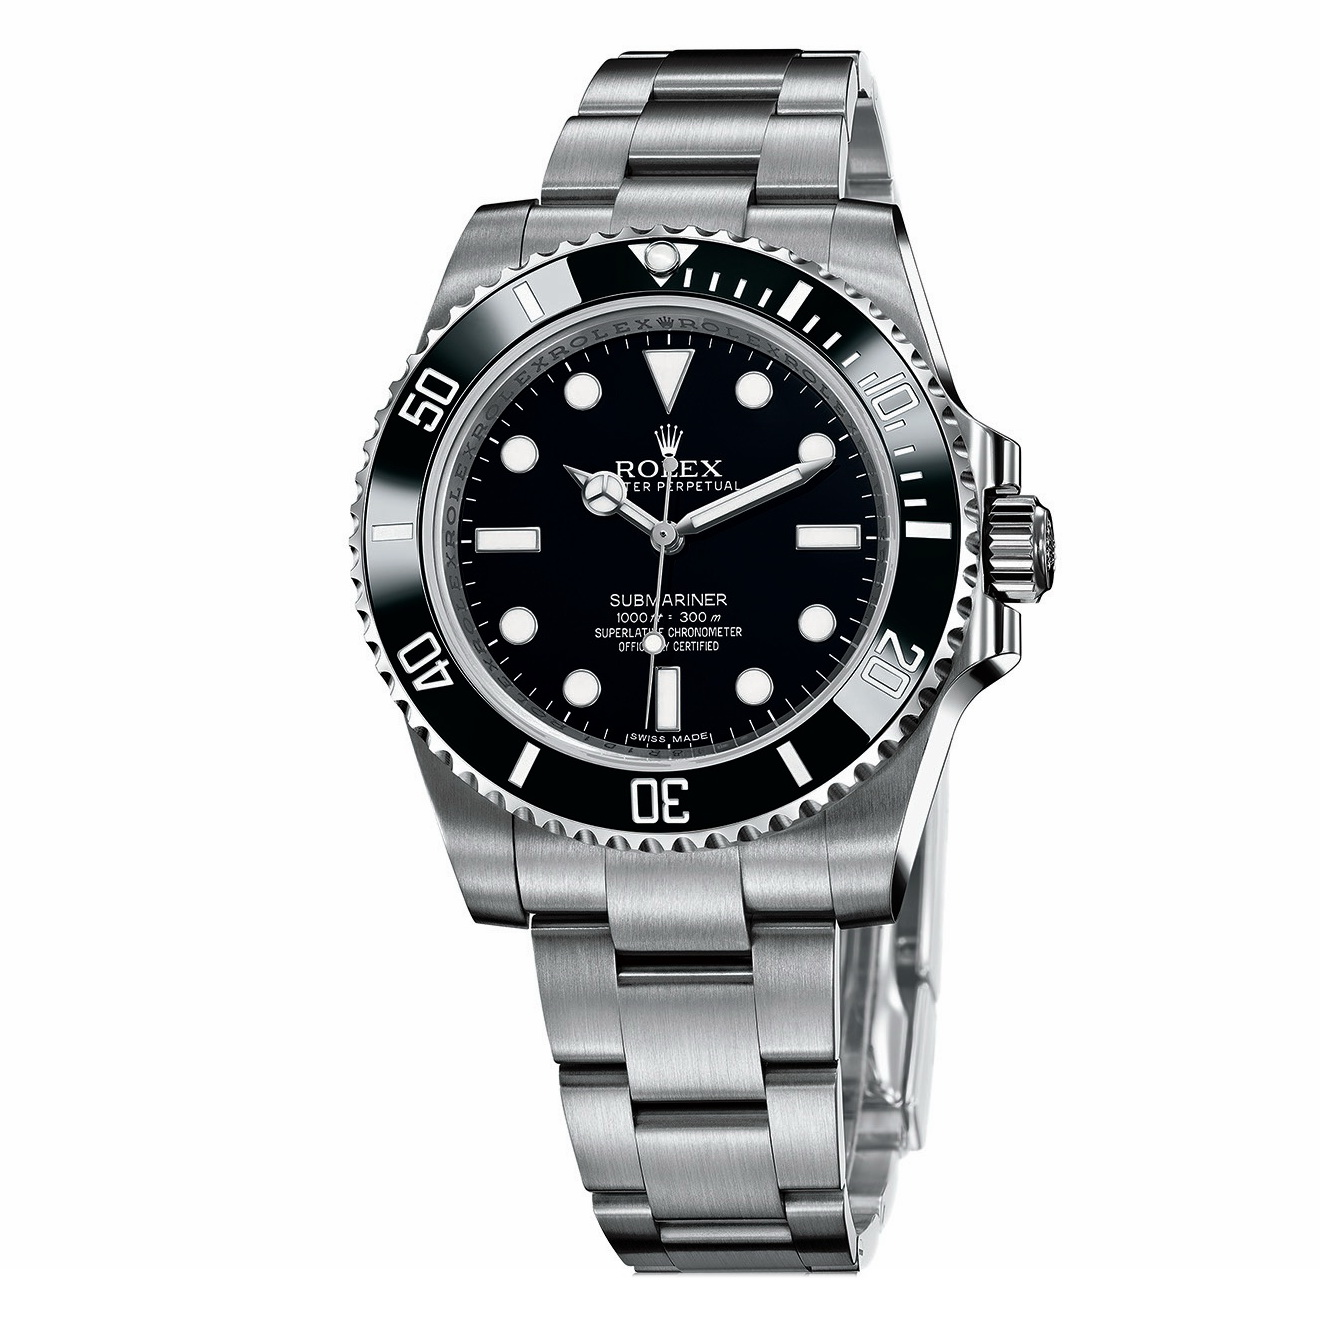 new look rolex submariner swiss classic watches. Black Bedroom Furniture Sets. Home Design Ideas